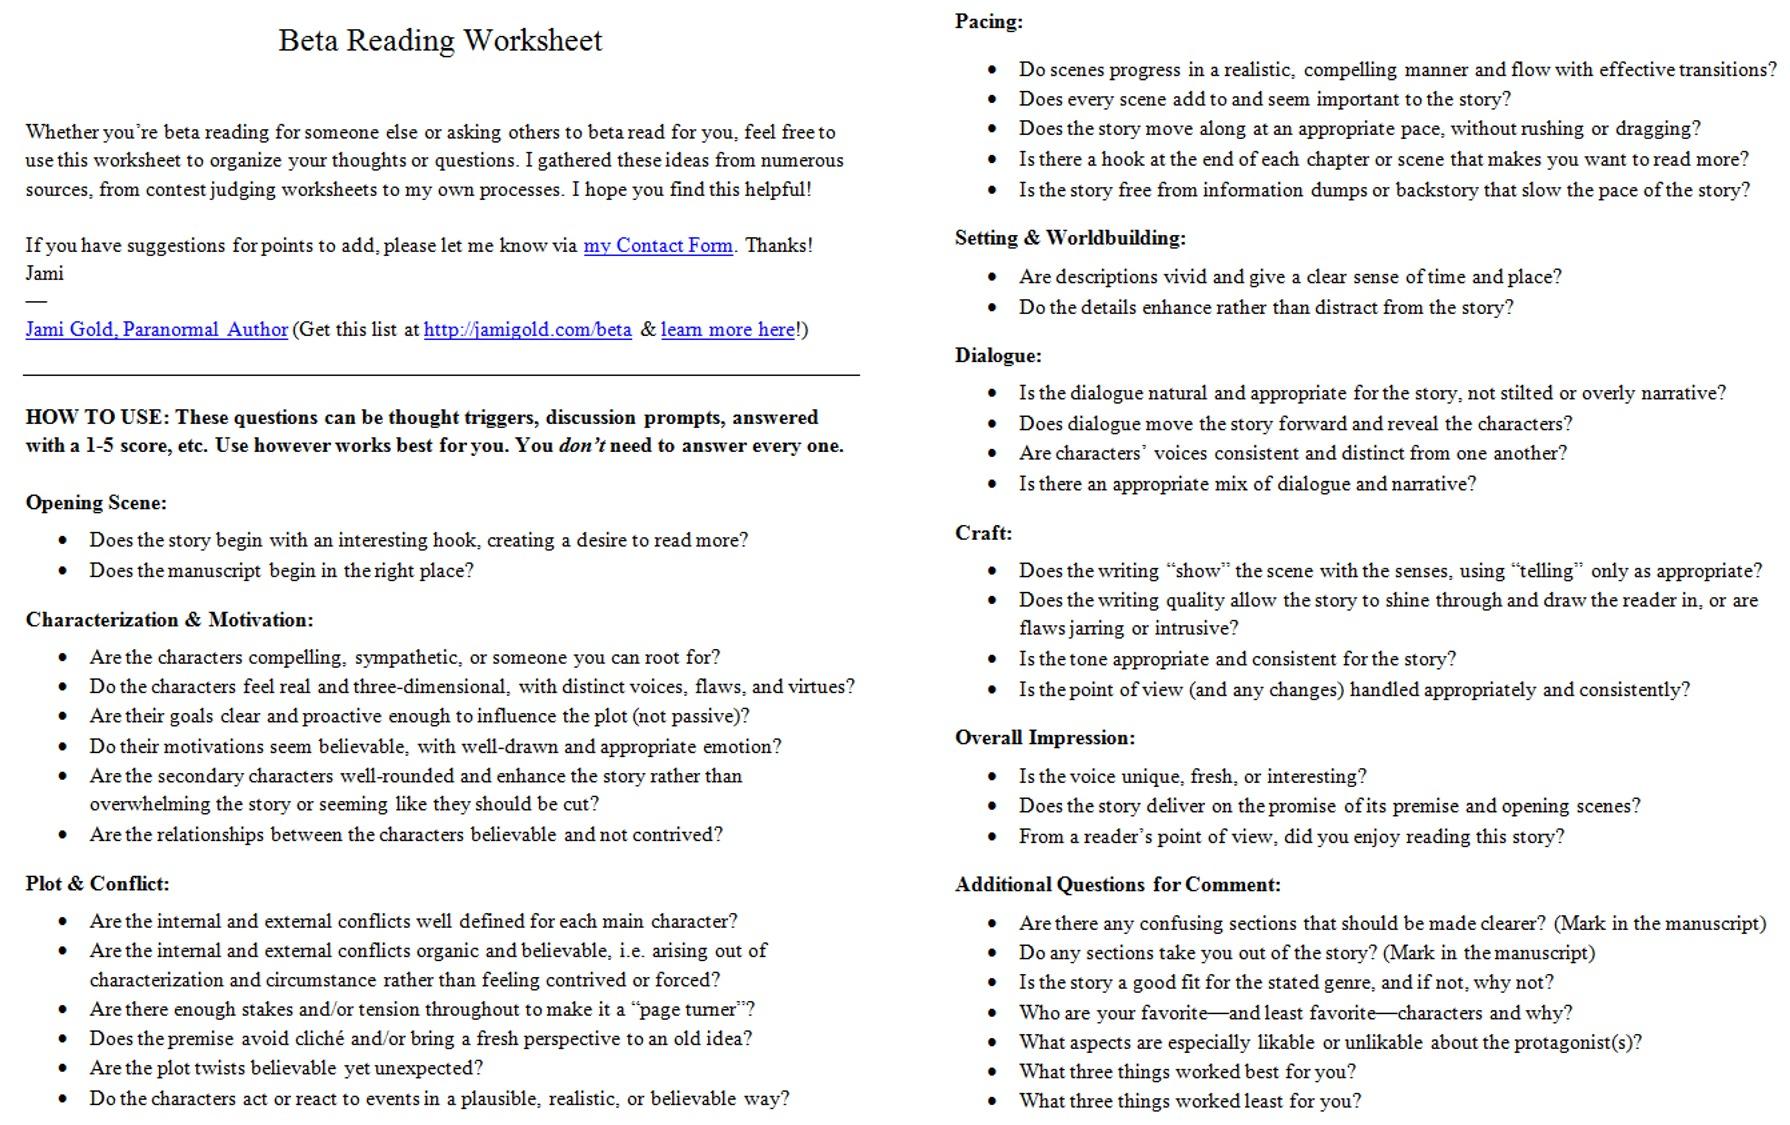 Aldiablosus  Outstanding Worksheets For Writers  Jami Gold Paranormal Author With Great Screen Shot Of The Twopage Beta Reading Worksheet With Extraordinary Free Printable Handwriting Worksheets For Kids Also Decimal To Percent Worksheets In Addition Maths Worksheets Grade  And Worksheet Their There They Re As Well As Word Problem Fraction Worksheets Additionally Word Analogies Worksheets From Jamigoldcom With Aldiablosus  Great Worksheets For Writers  Jami Gold Paranormal Author With Extraordinary Screen Shot Of The Twopage Beta Reading Worksheet And Outstanding Free Printable Handwriting Worksheets For Kids Also Decimal To Percent Worksheets In Addition Maths Worksheets Grade  From Jamigoldcom